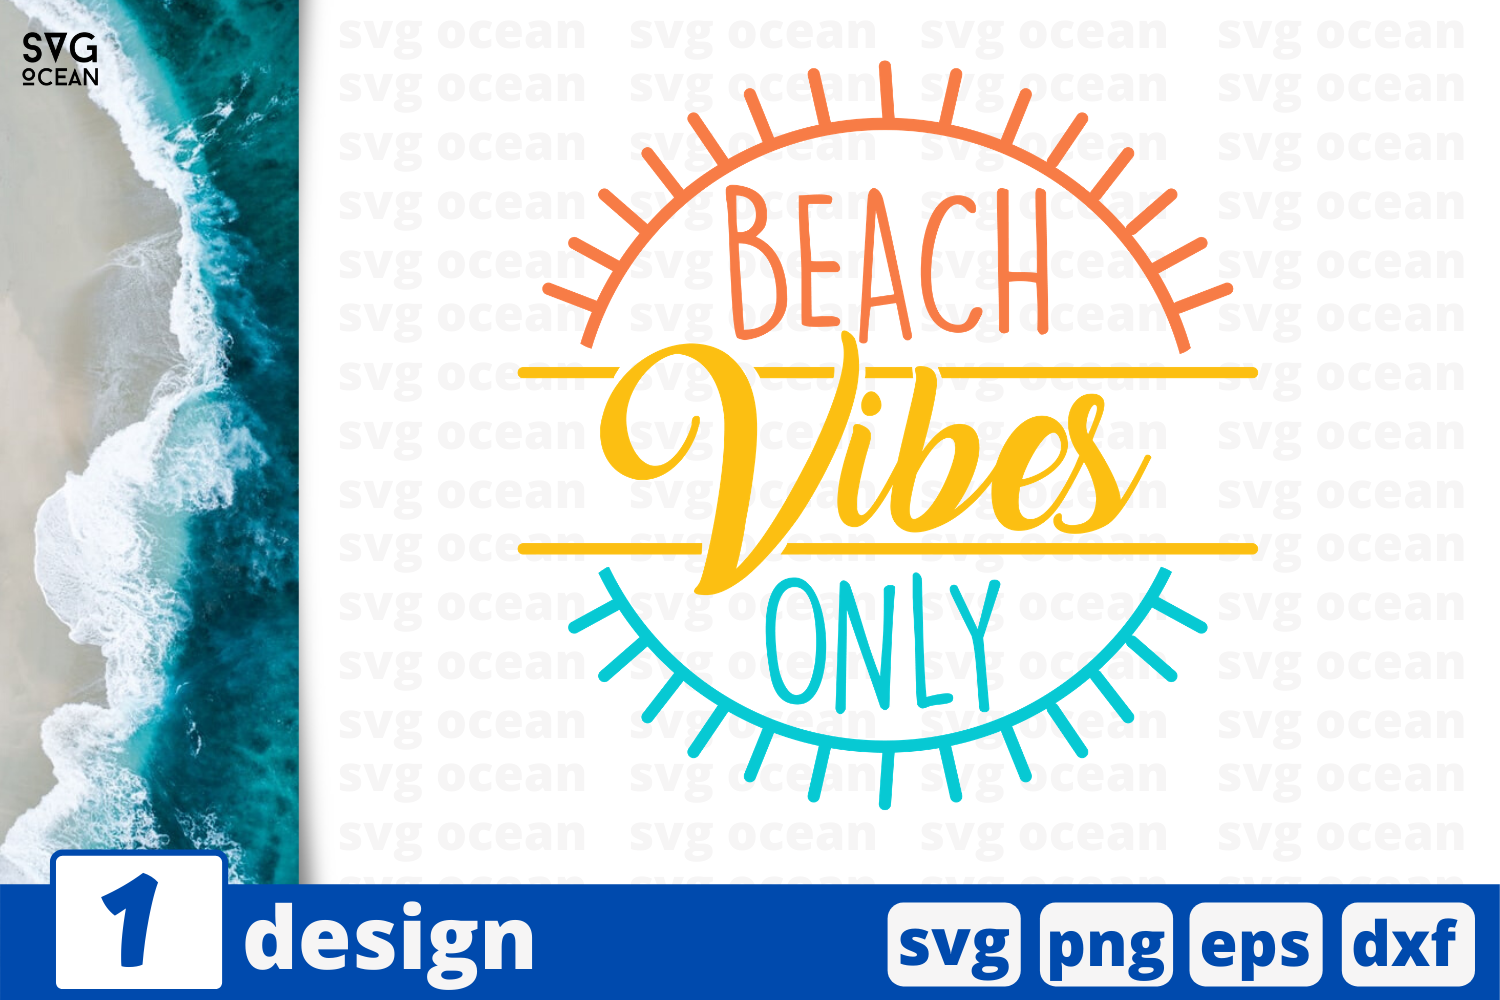 Download Free 1 Beach Vibes Only Summer Svg Cricut Graphic By Svgocean for Cricut Explore, Silhouette and other cutting machines.